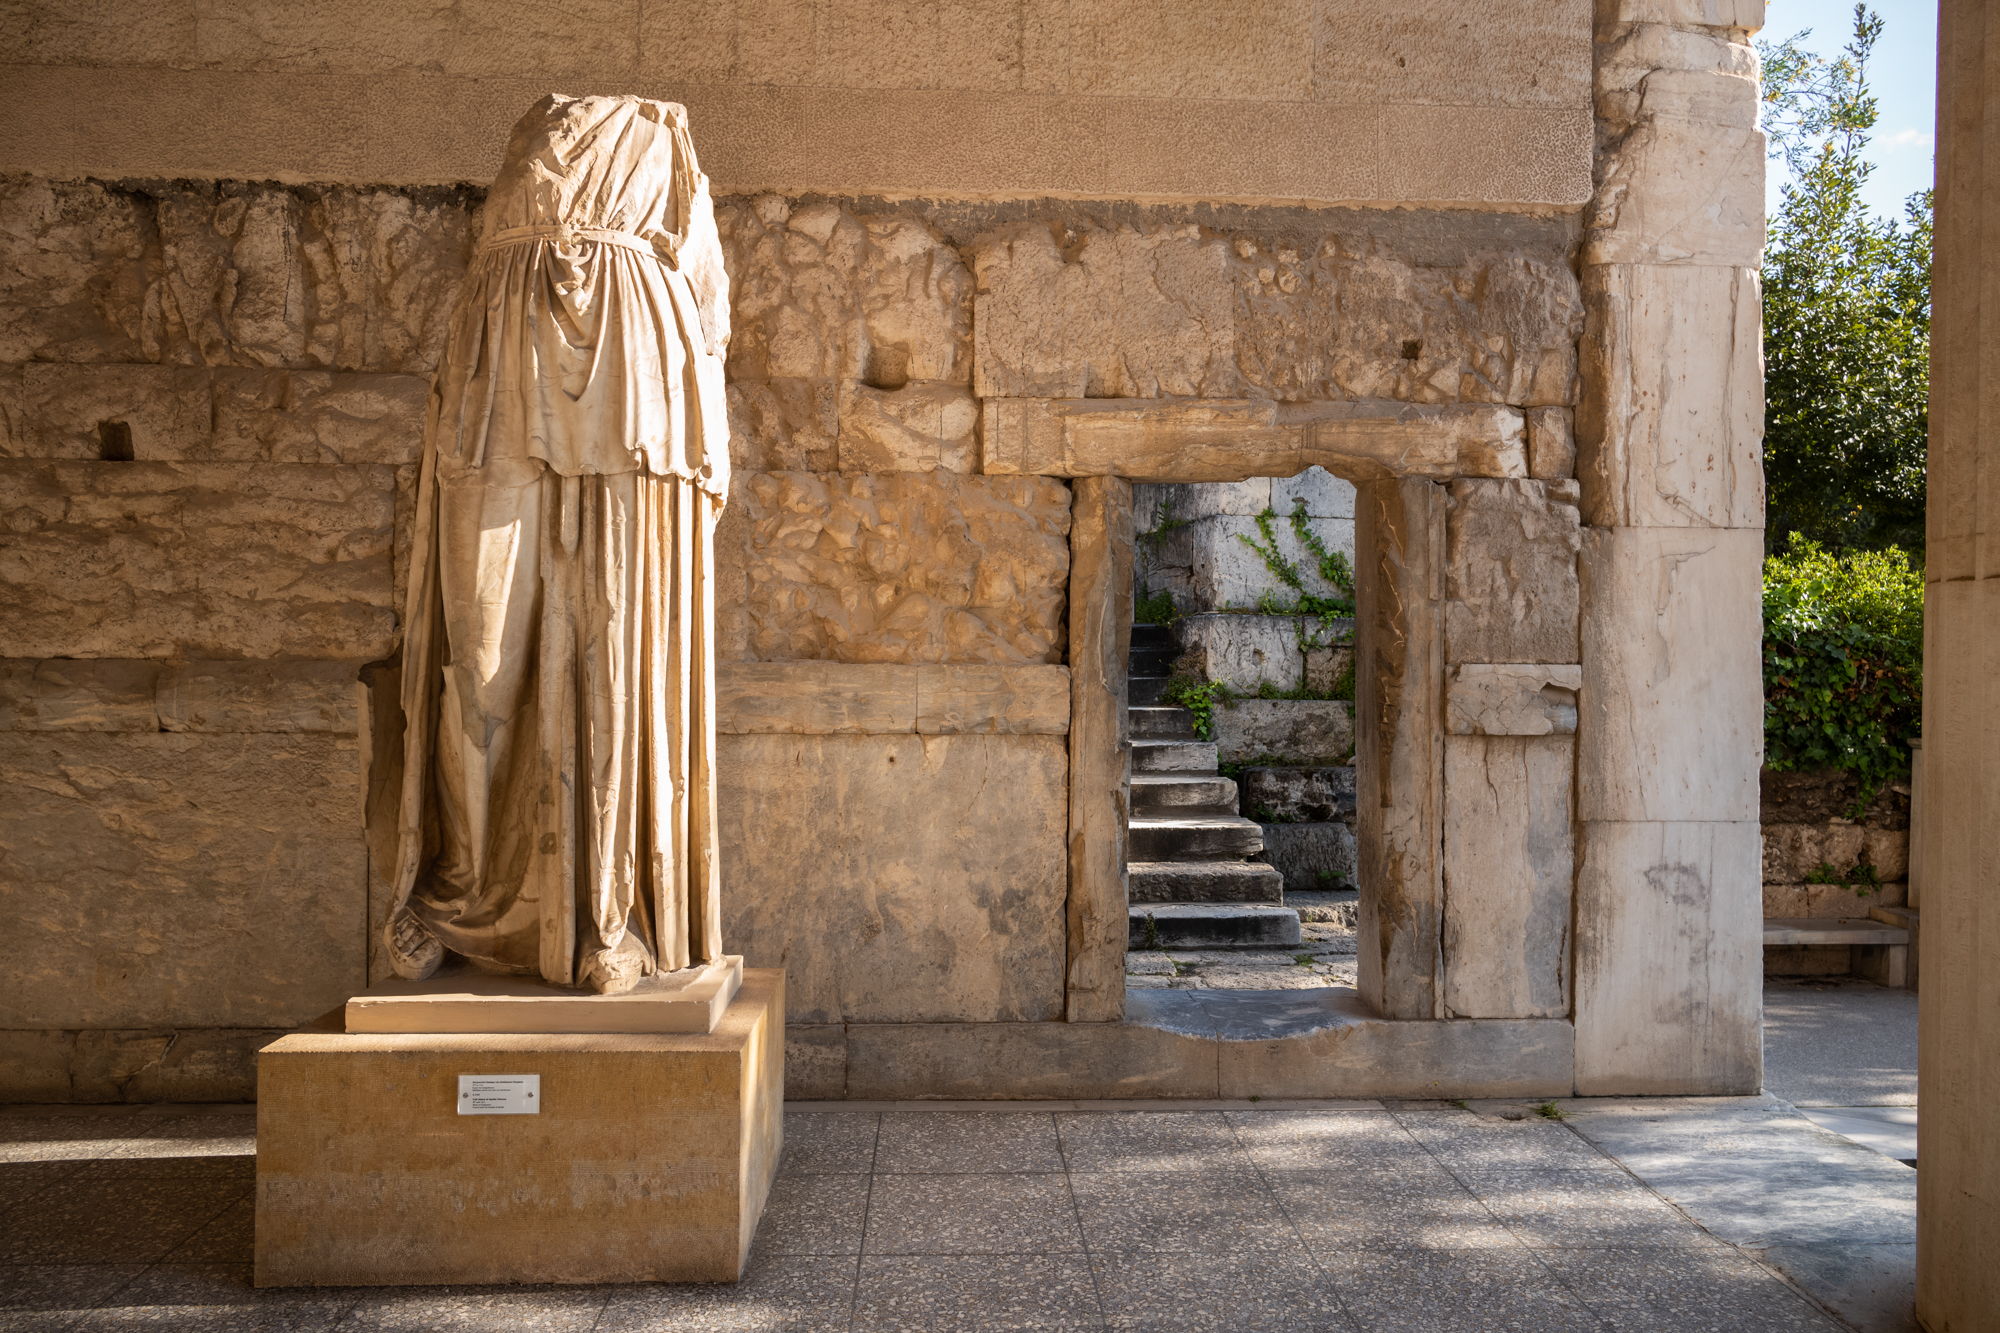 Statue of the Cult of Apollo from 4th century BC